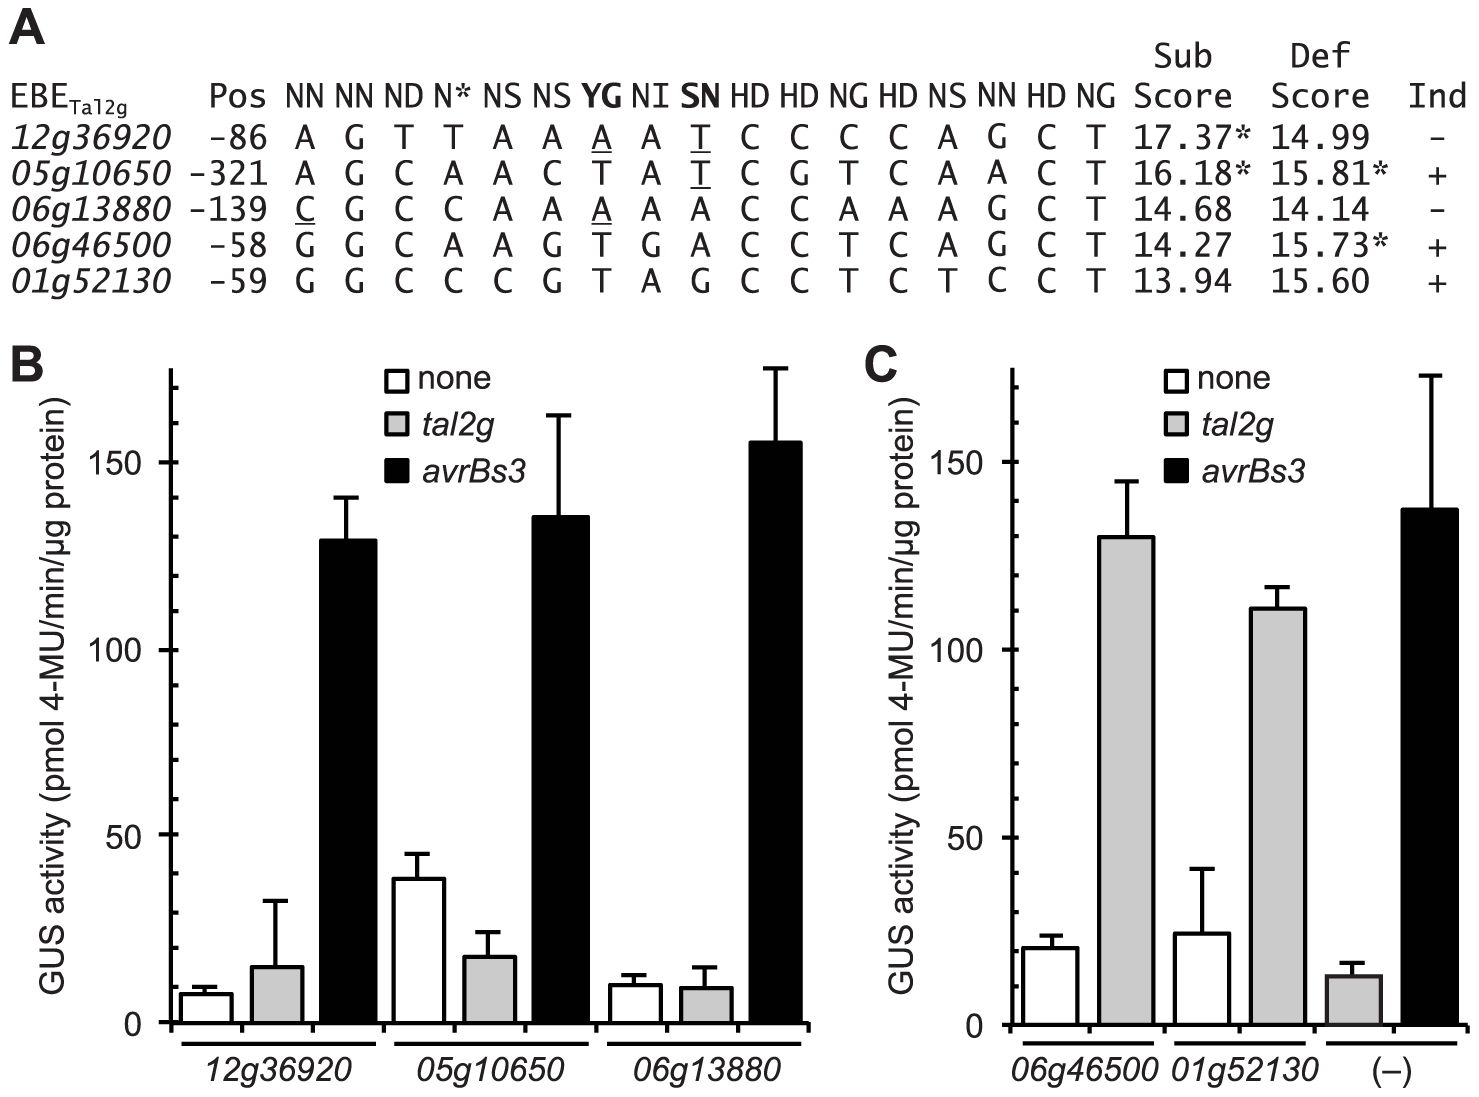 Functional characterization of selected rice promoter sequences similar to the verified Tal2g EBEs.